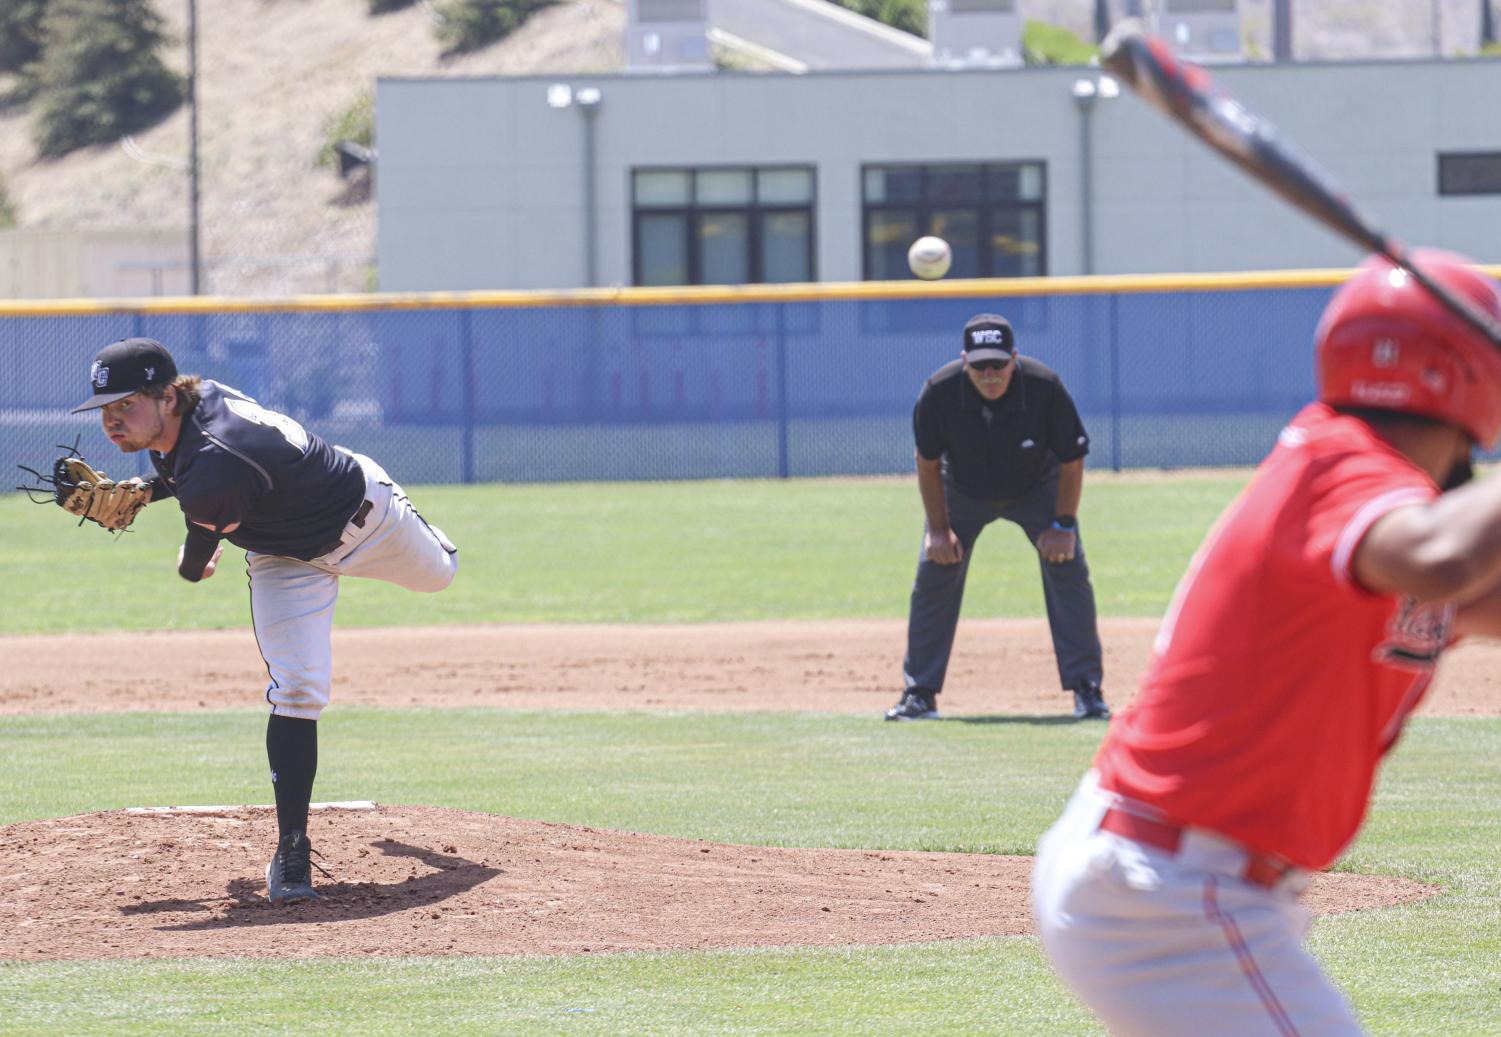 Moorpark Raider's freshman pitcher Noah Balandran delivers a pitch against the visiting Bakersfield Renegades on May 8, 2021.